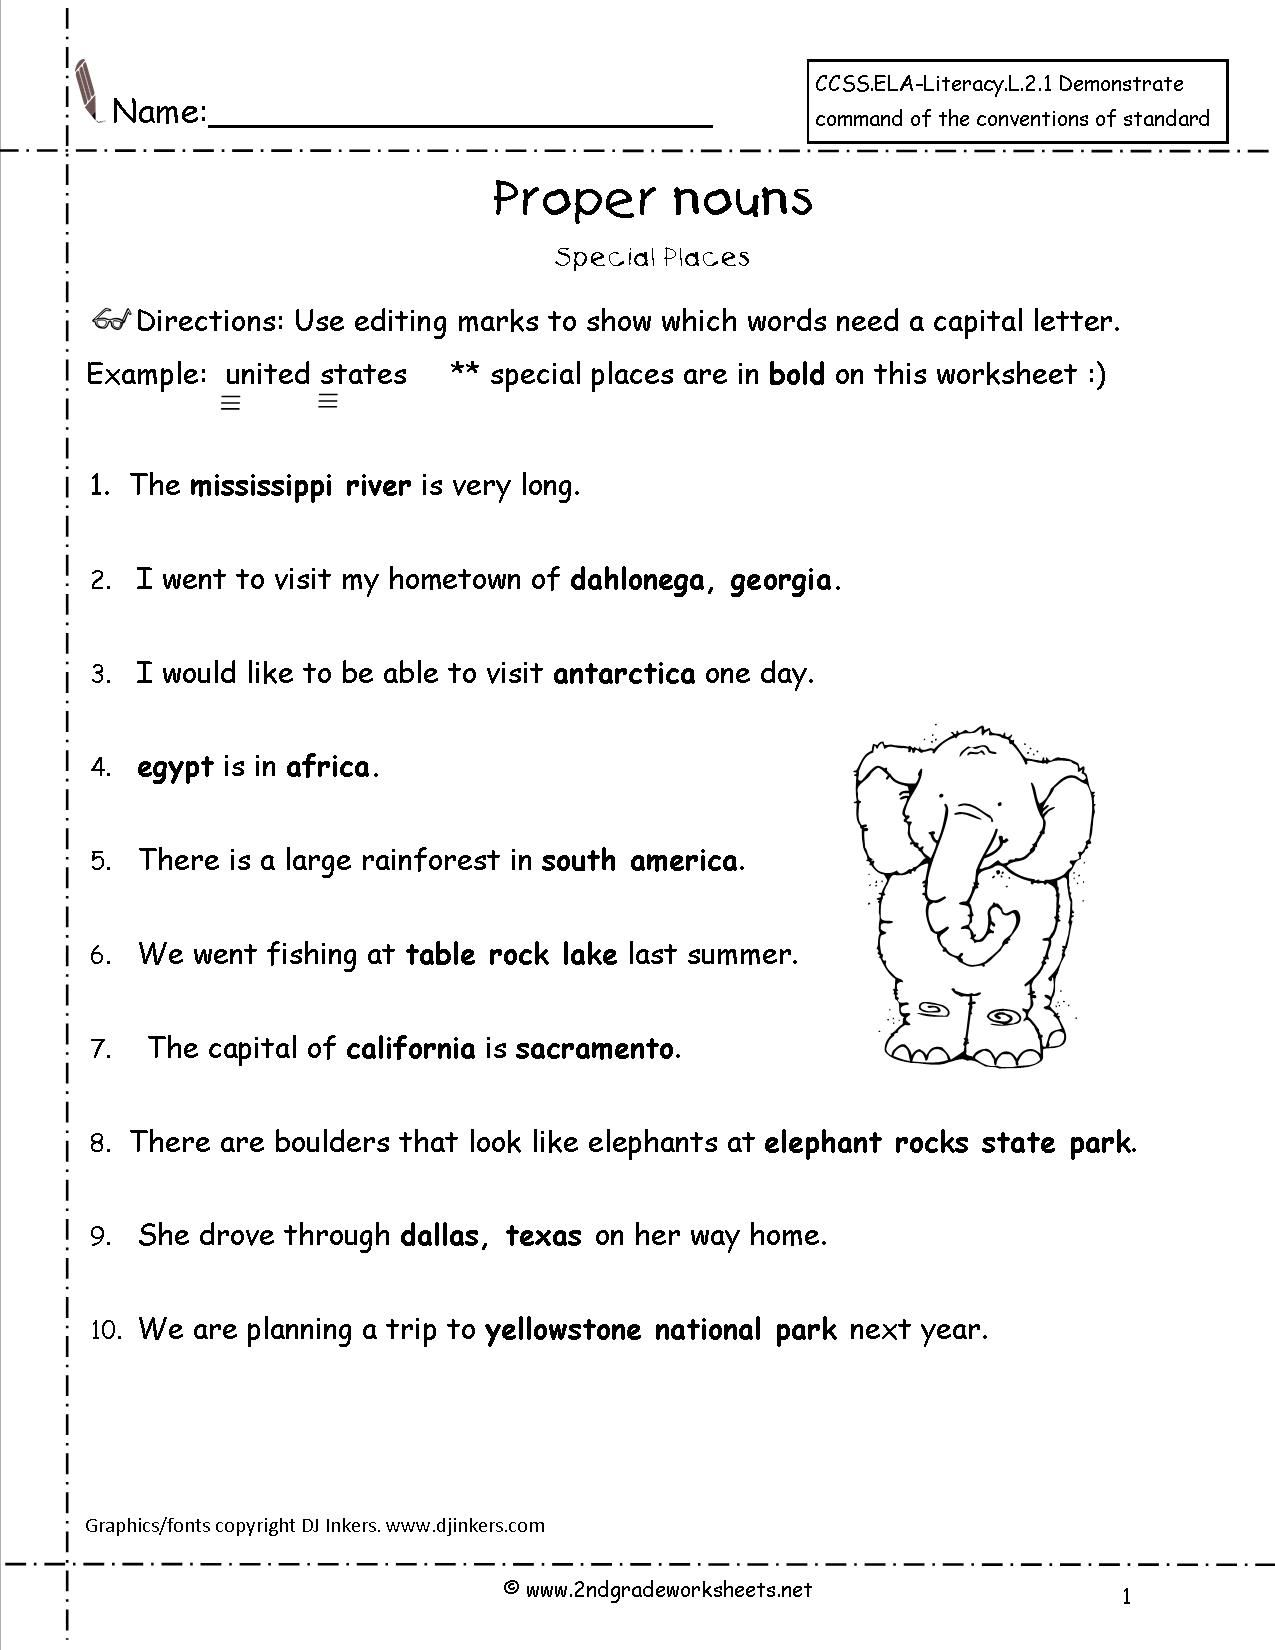 Proper Nouns Worksheet For 4th Grade